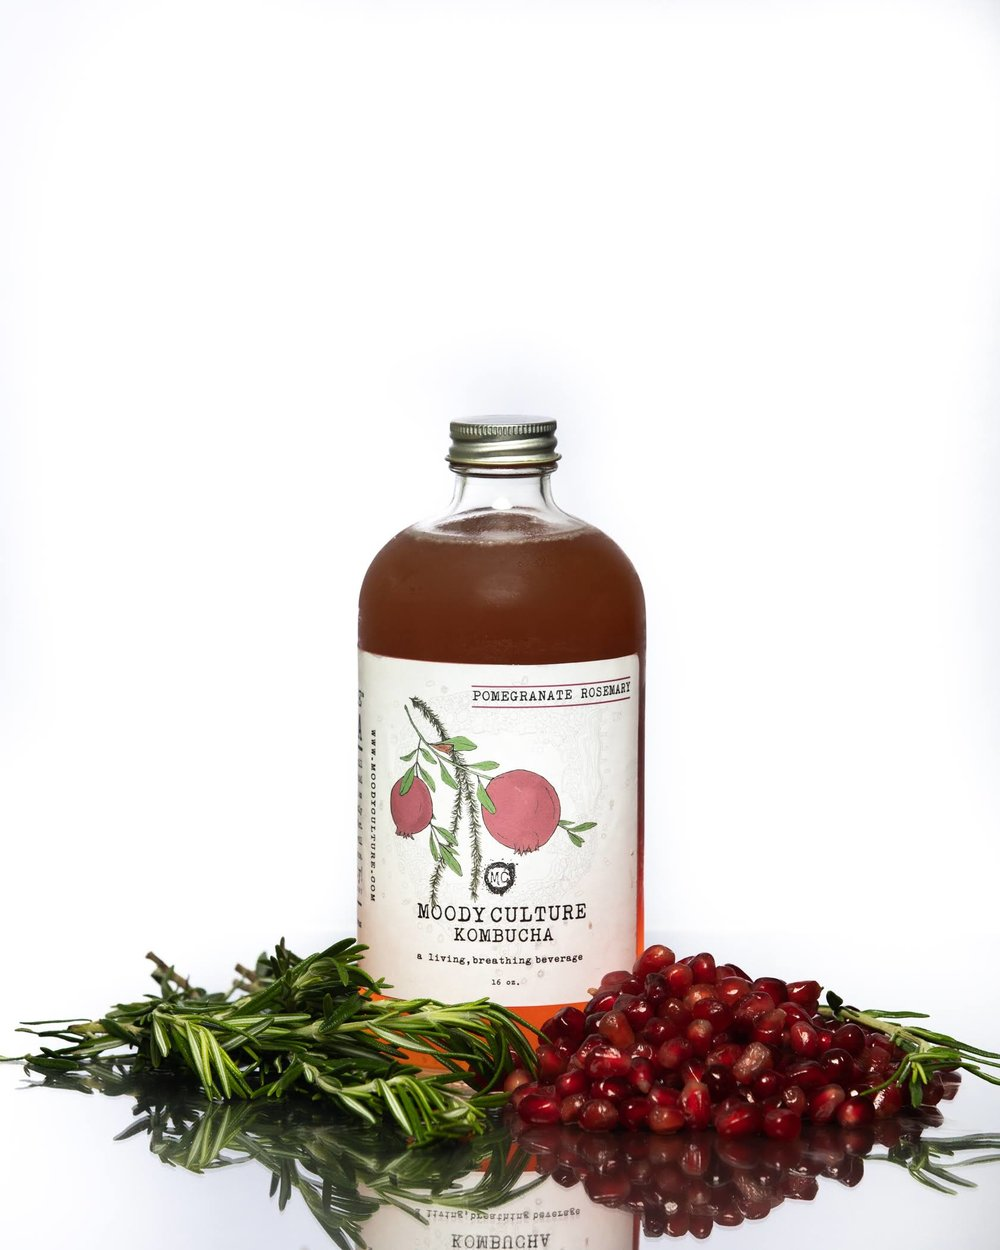 POMEGRANATE ROSEMARY -